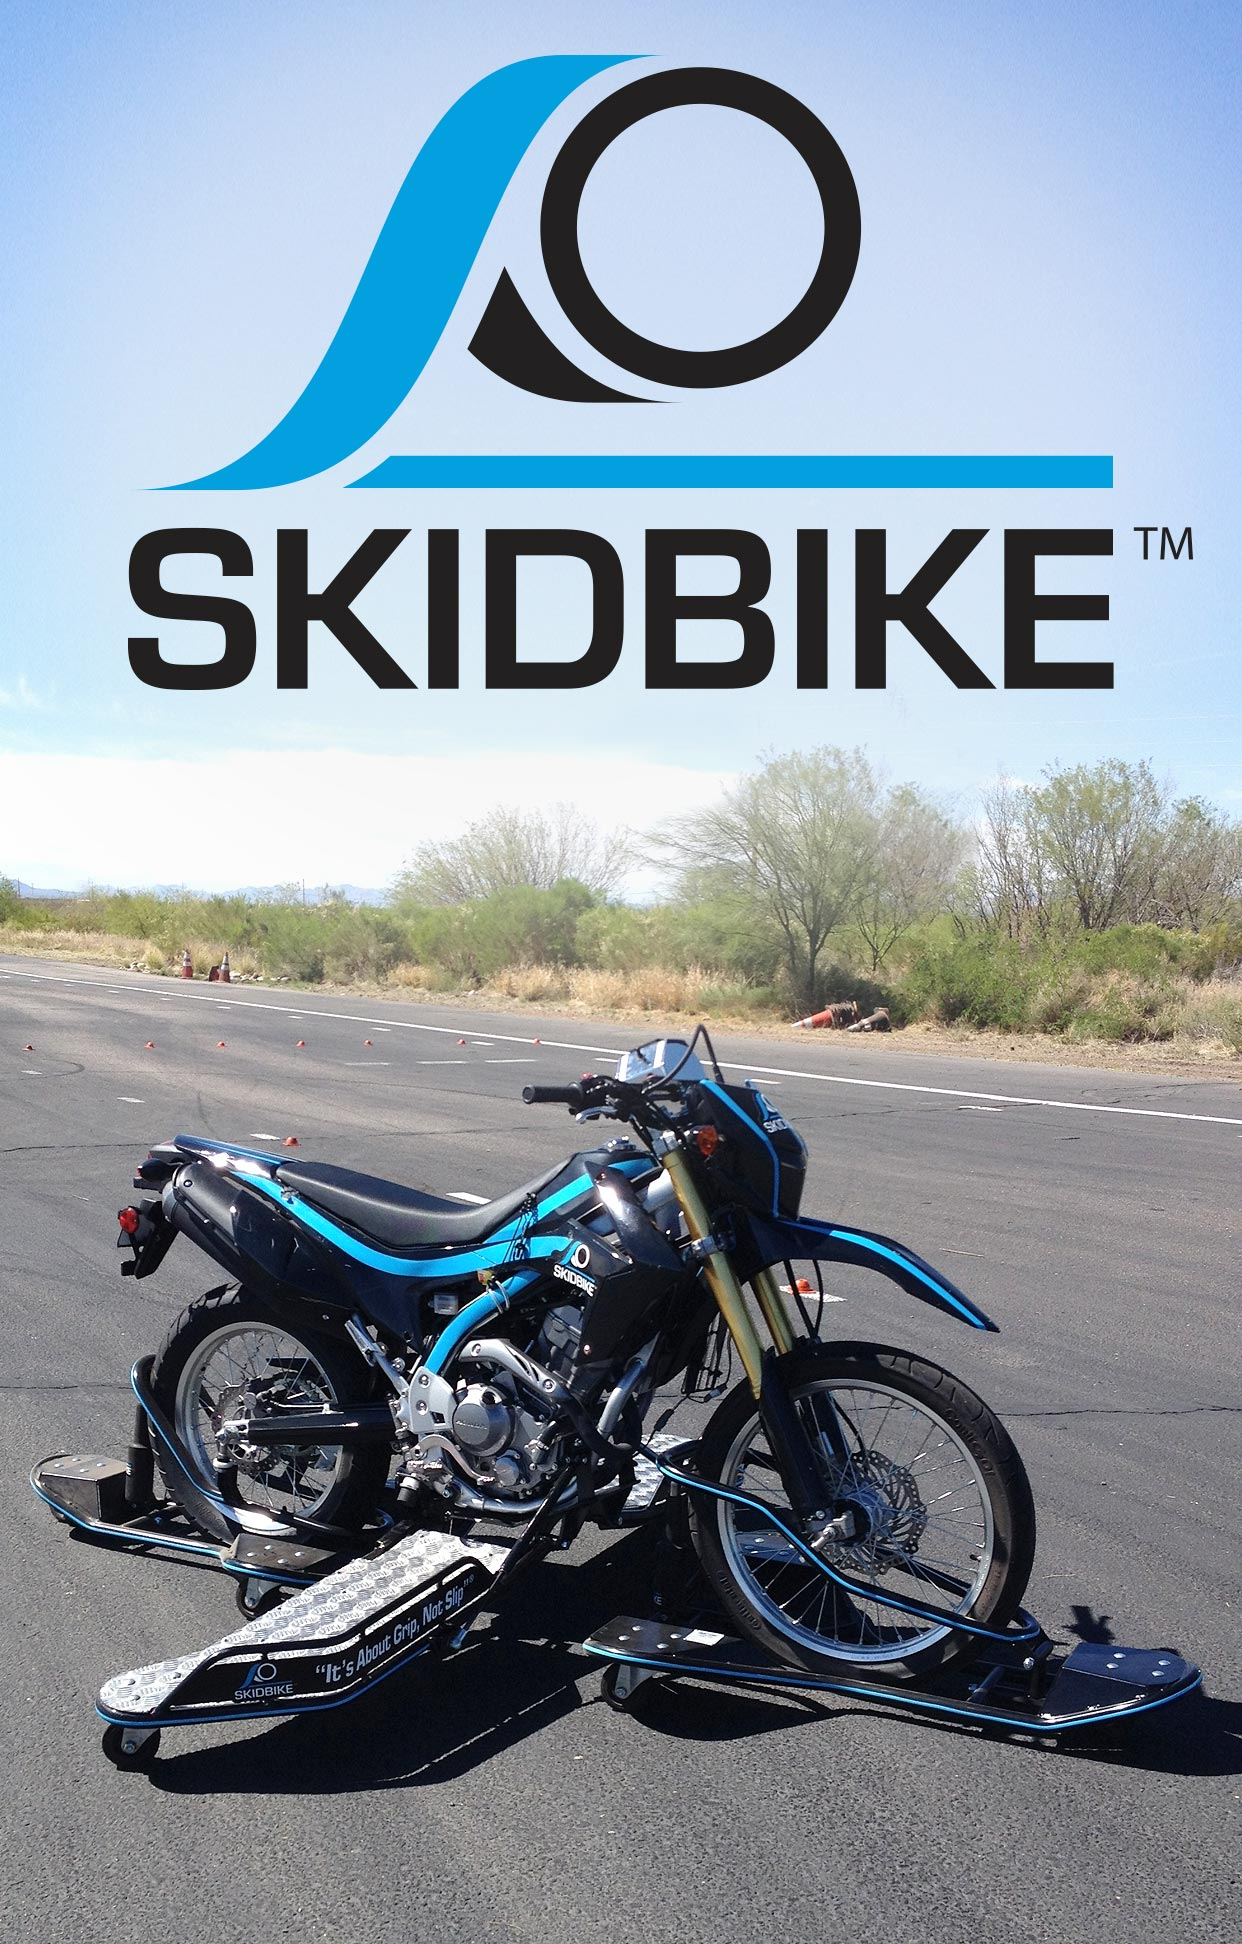 SKIDBIKE Hero Image and Logo